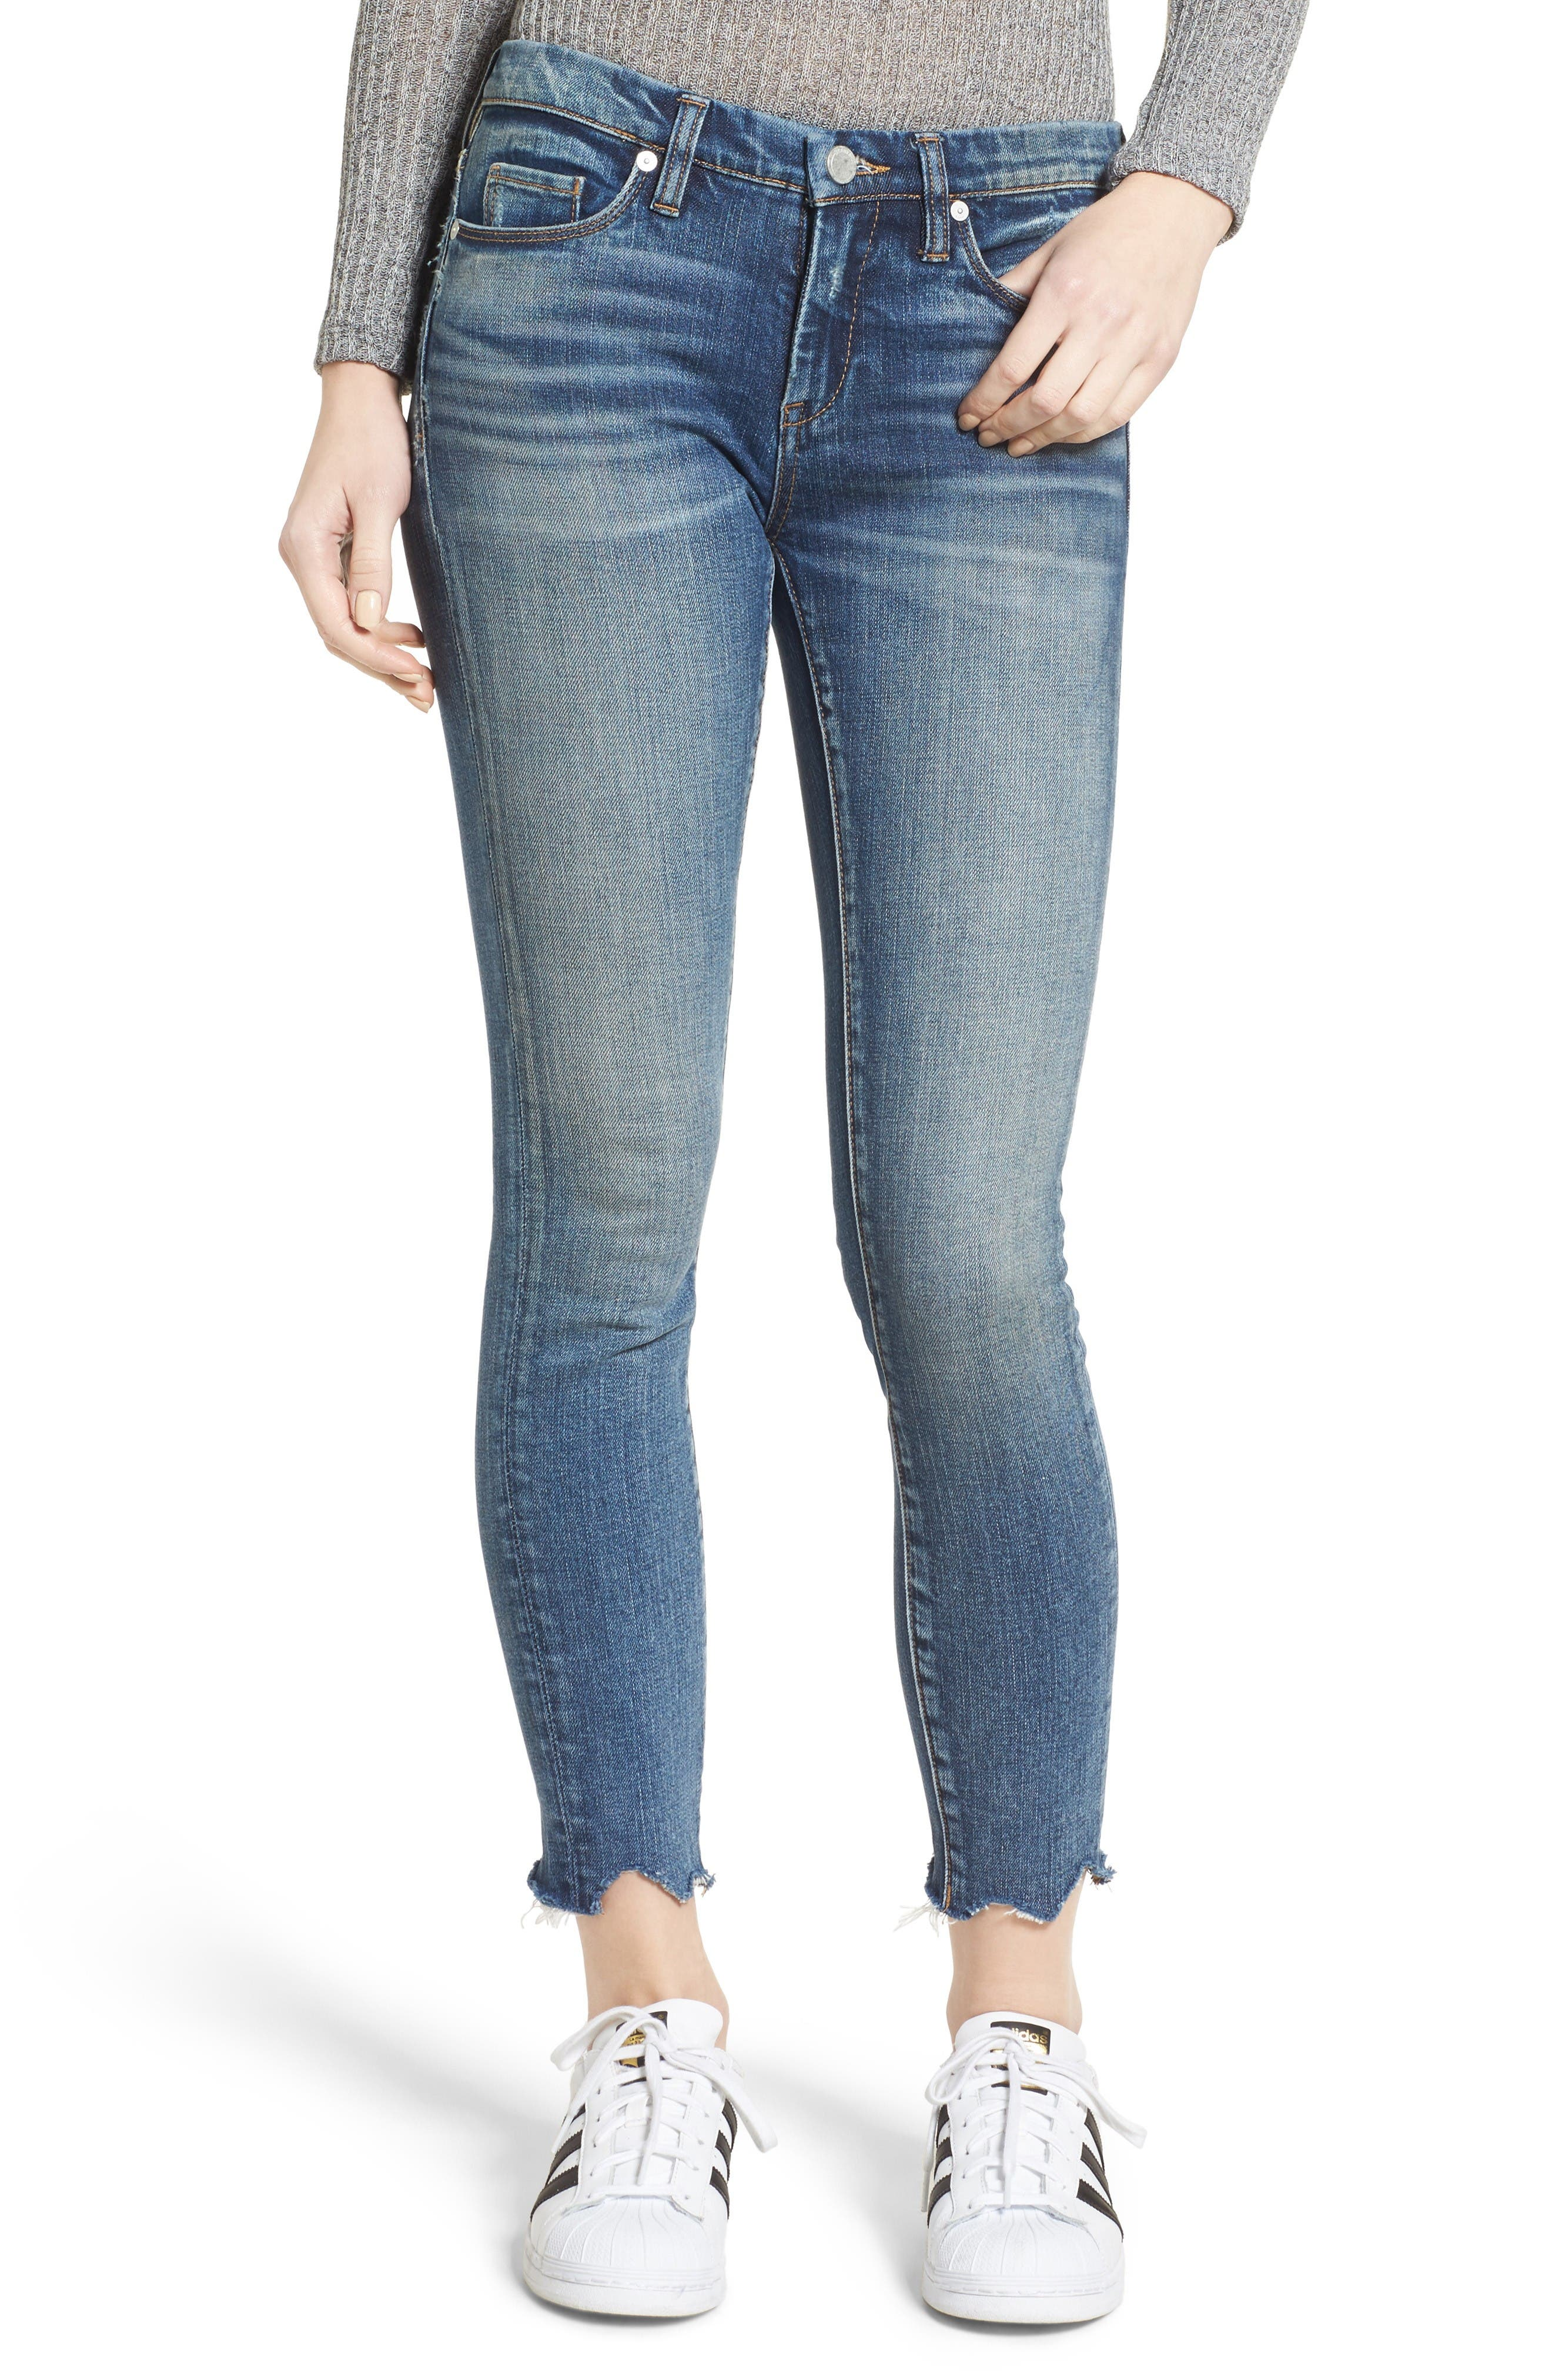 Alternate Image 1 Selected - BLANKNYC Ankle Skinny Jeans (Amped Out)